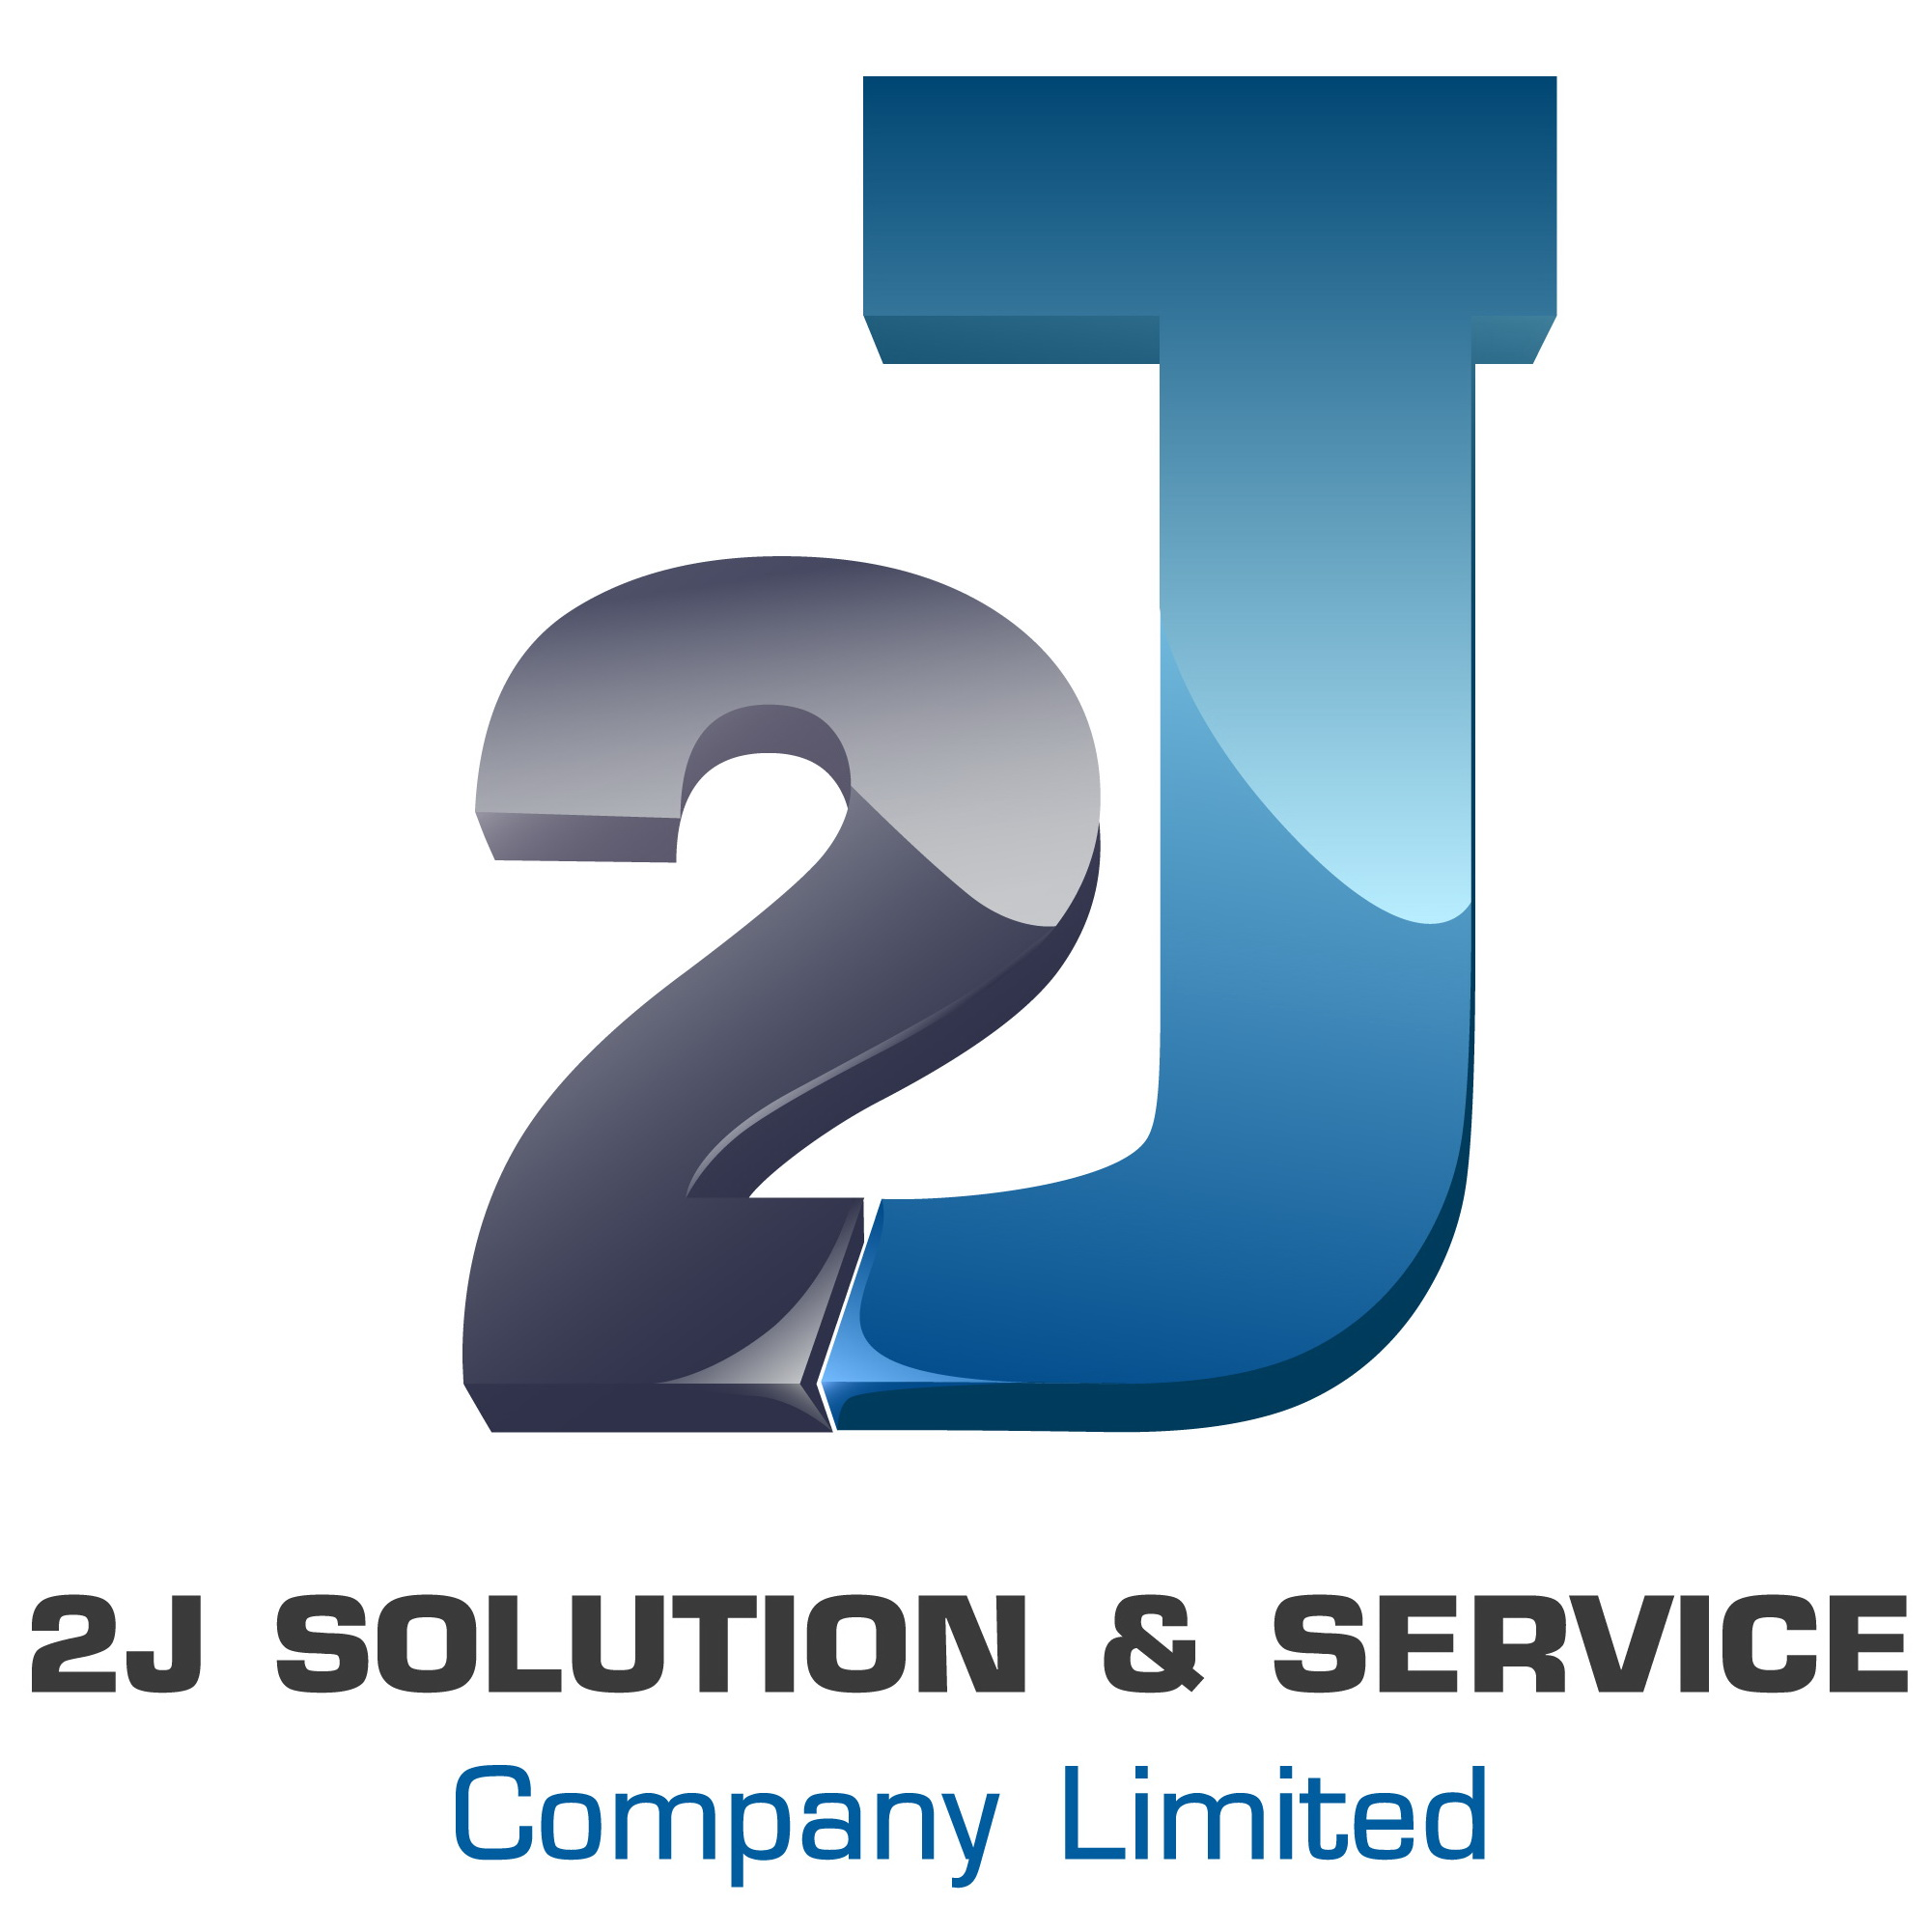 2J Solution & Service Co., Ltd.